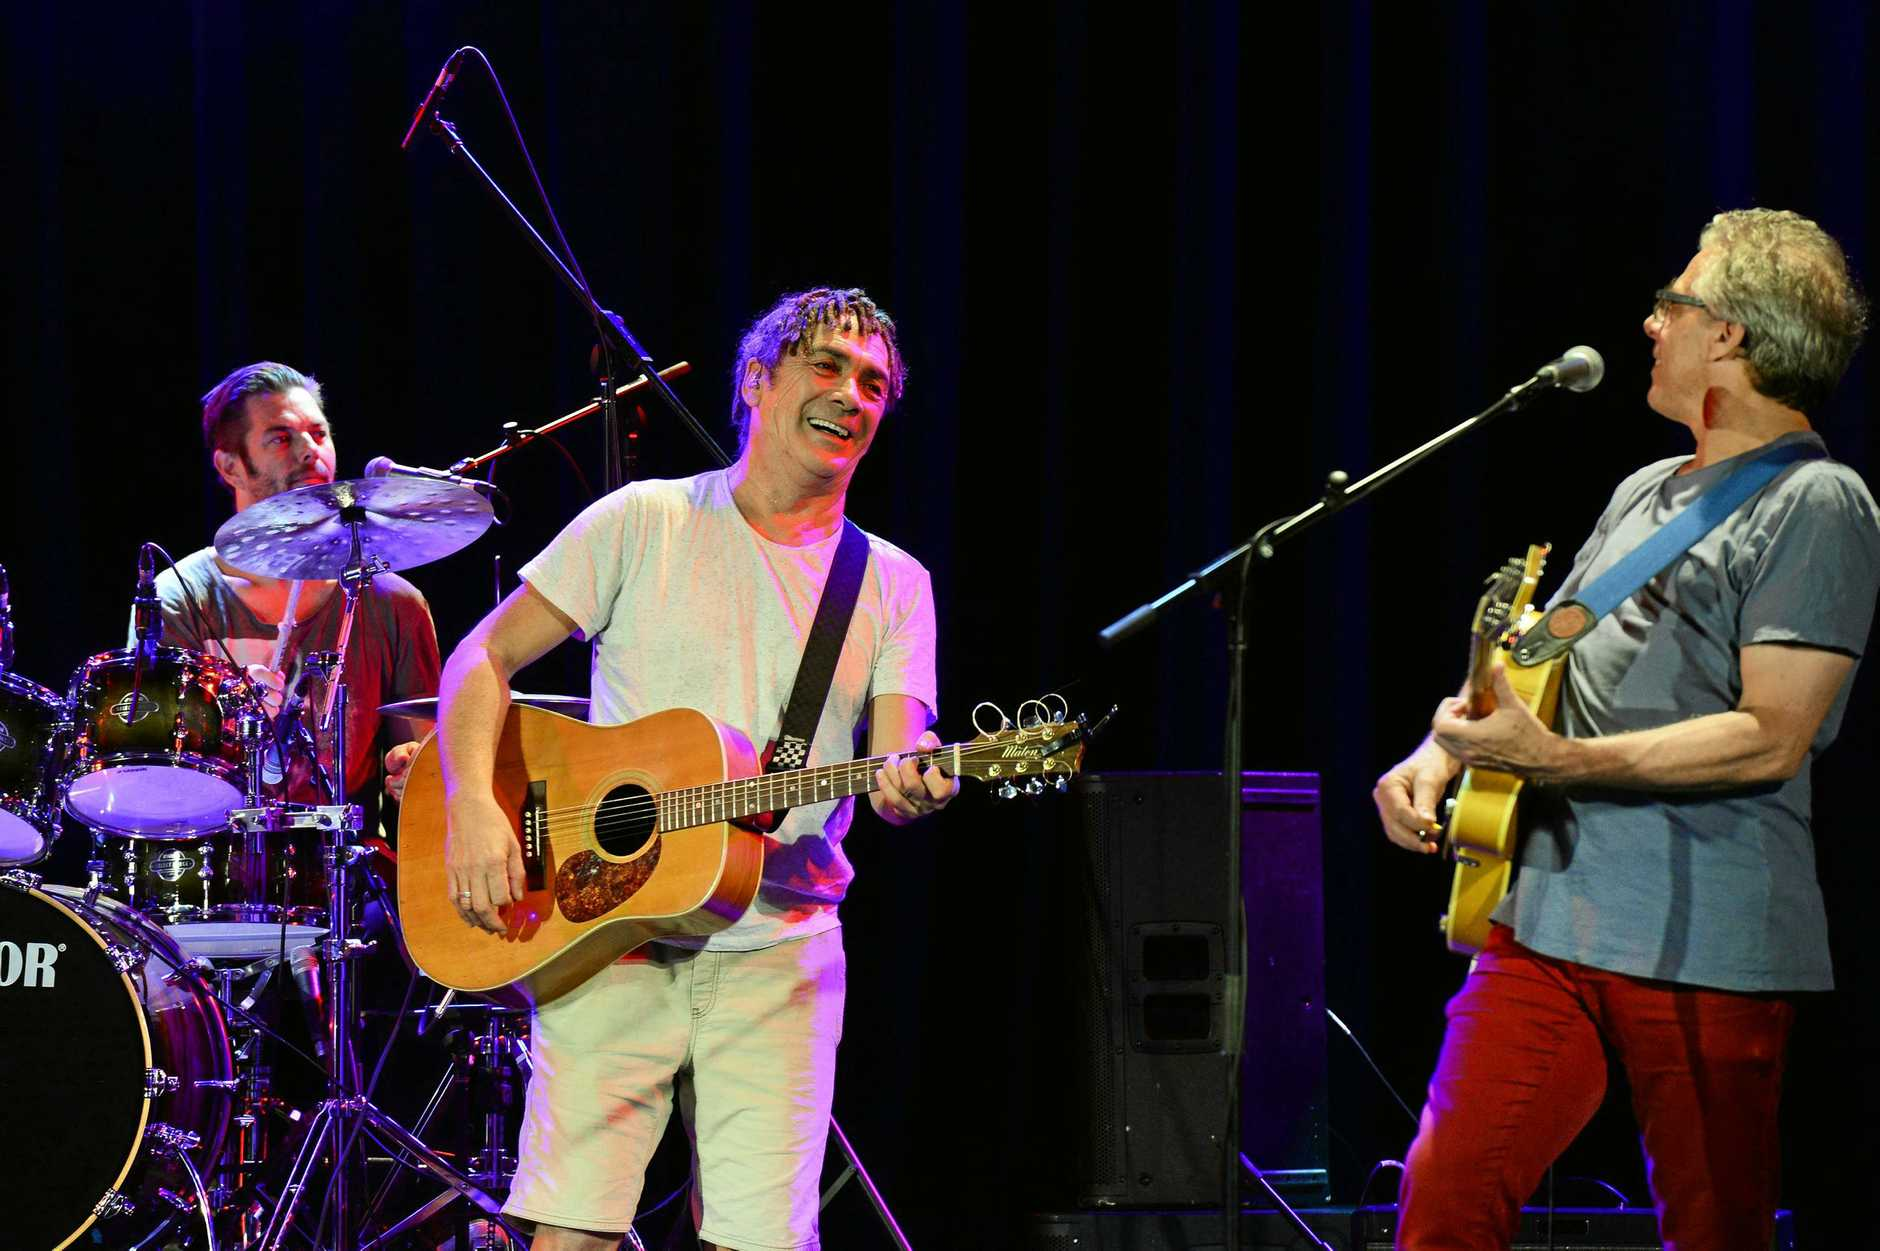 Classic Aussie rock band Dragon performed at the Ipswich Civic Centre last night. Pictured here during sound-check before the gig.